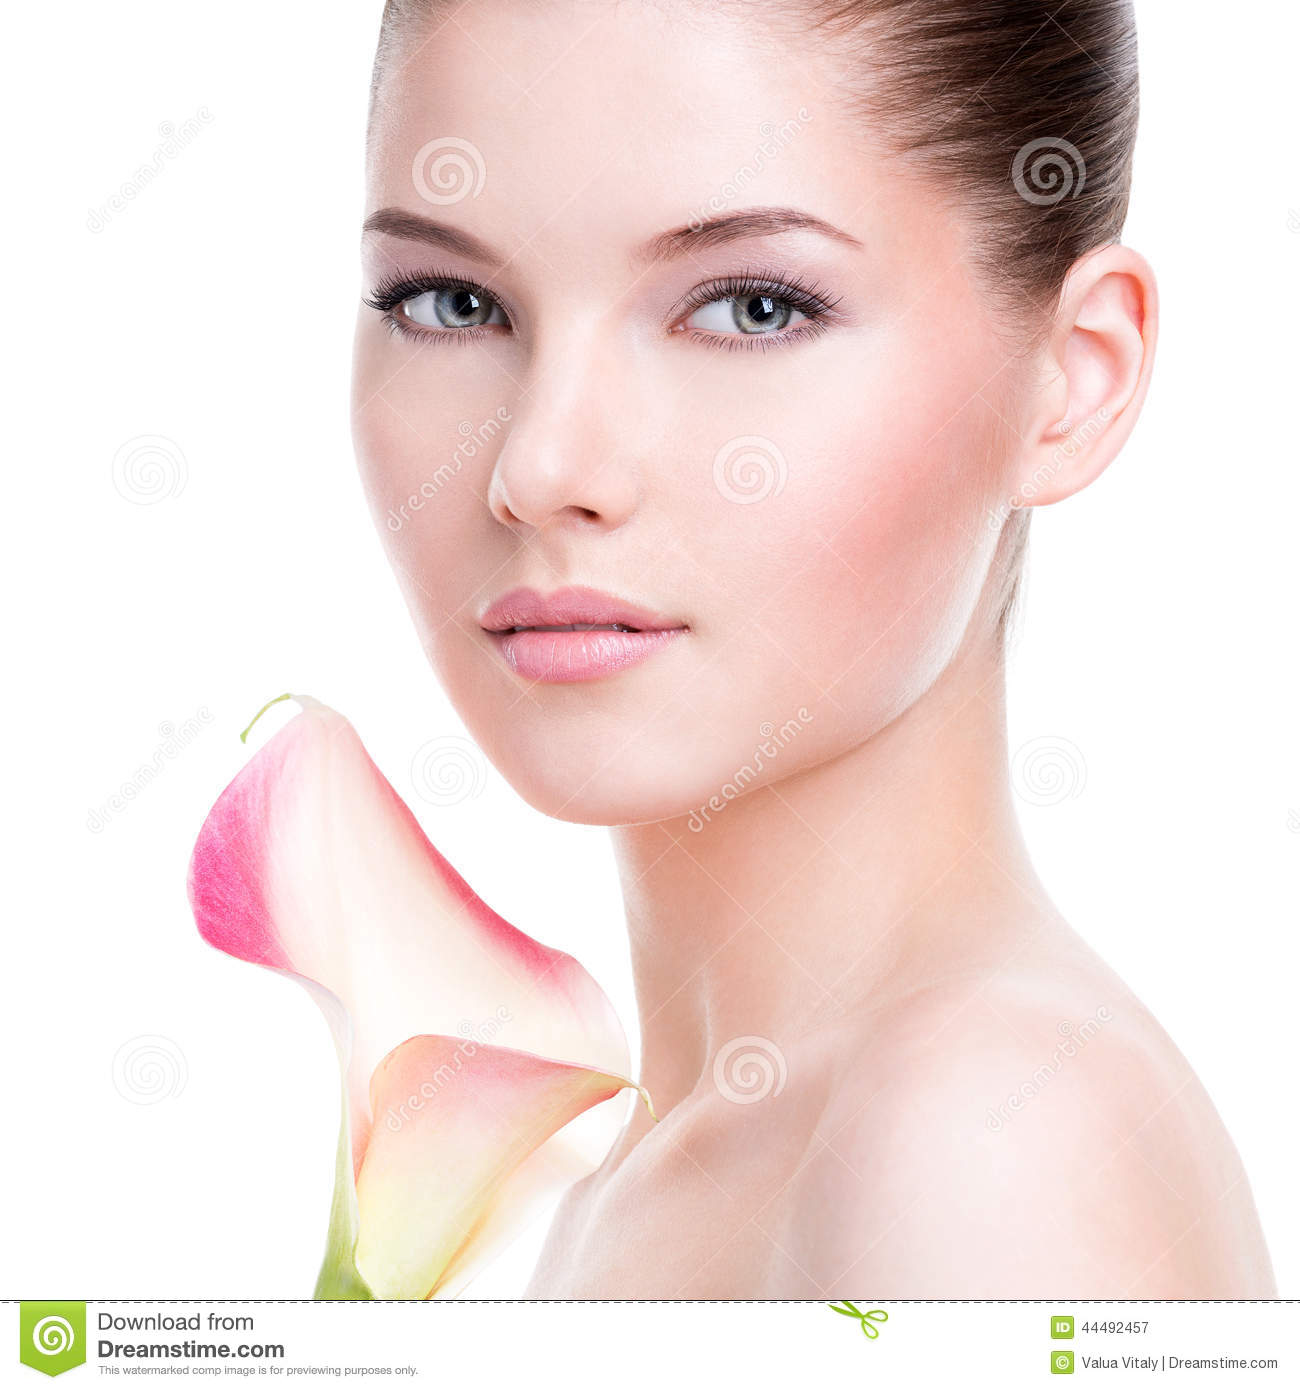 Skin Health: Beautiful Face Of Young Pretty Woman With Healthy Skin